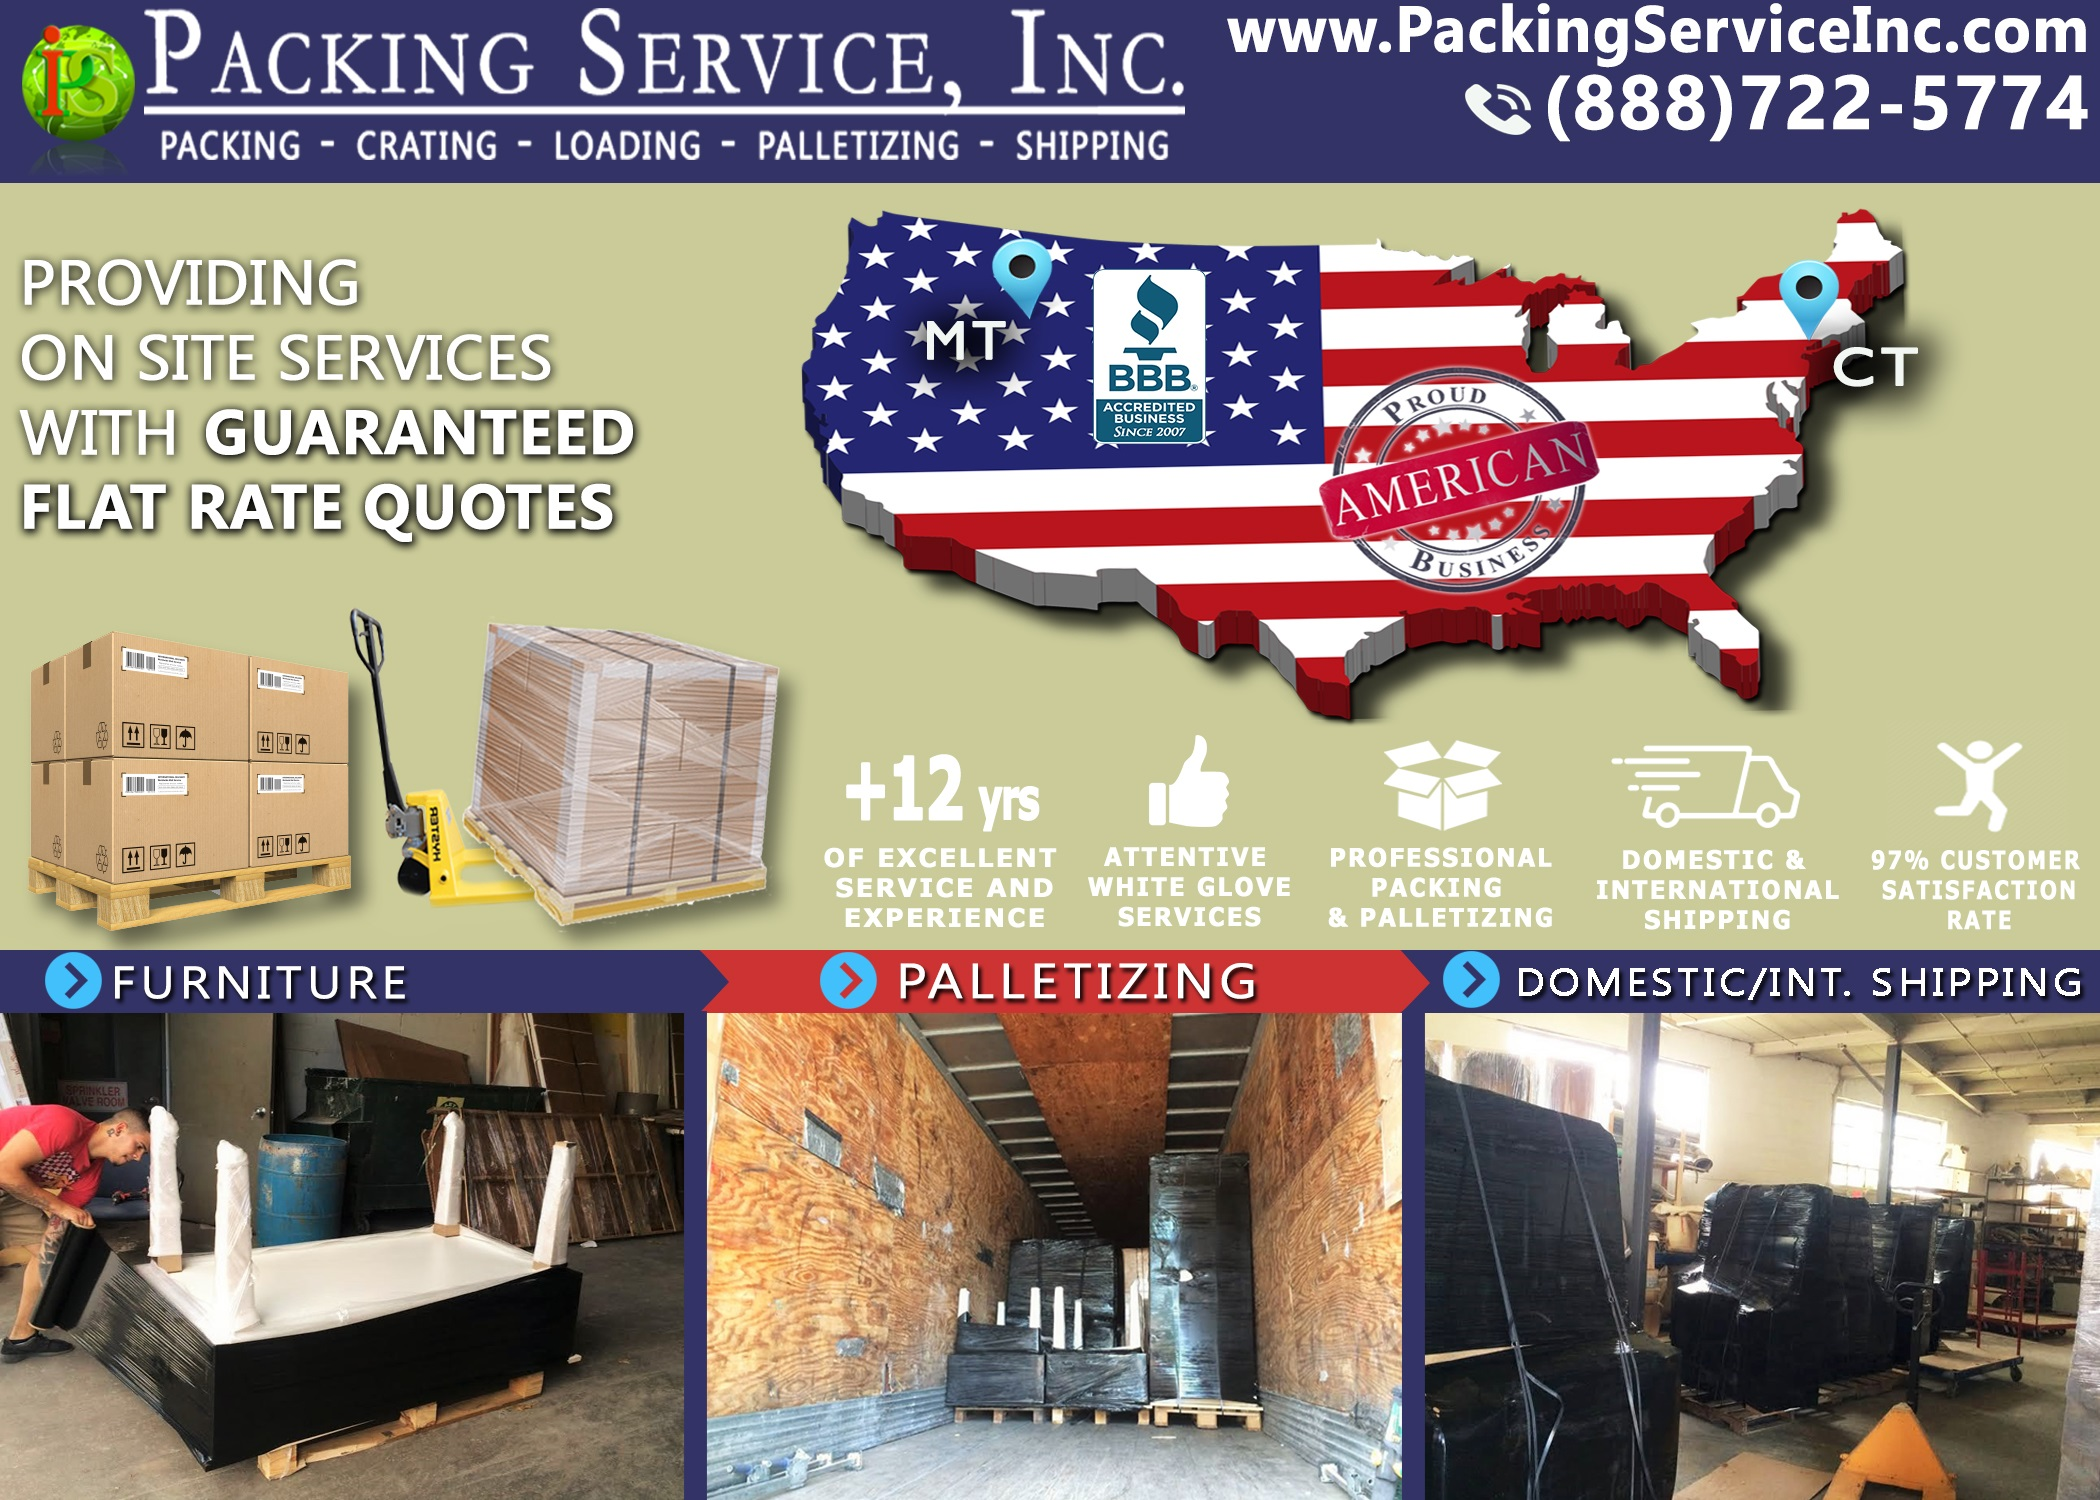 Wrapping New Furniture, Palletizing and Shipping from Conneticut to Montana with Packing Service, Inc. - 596